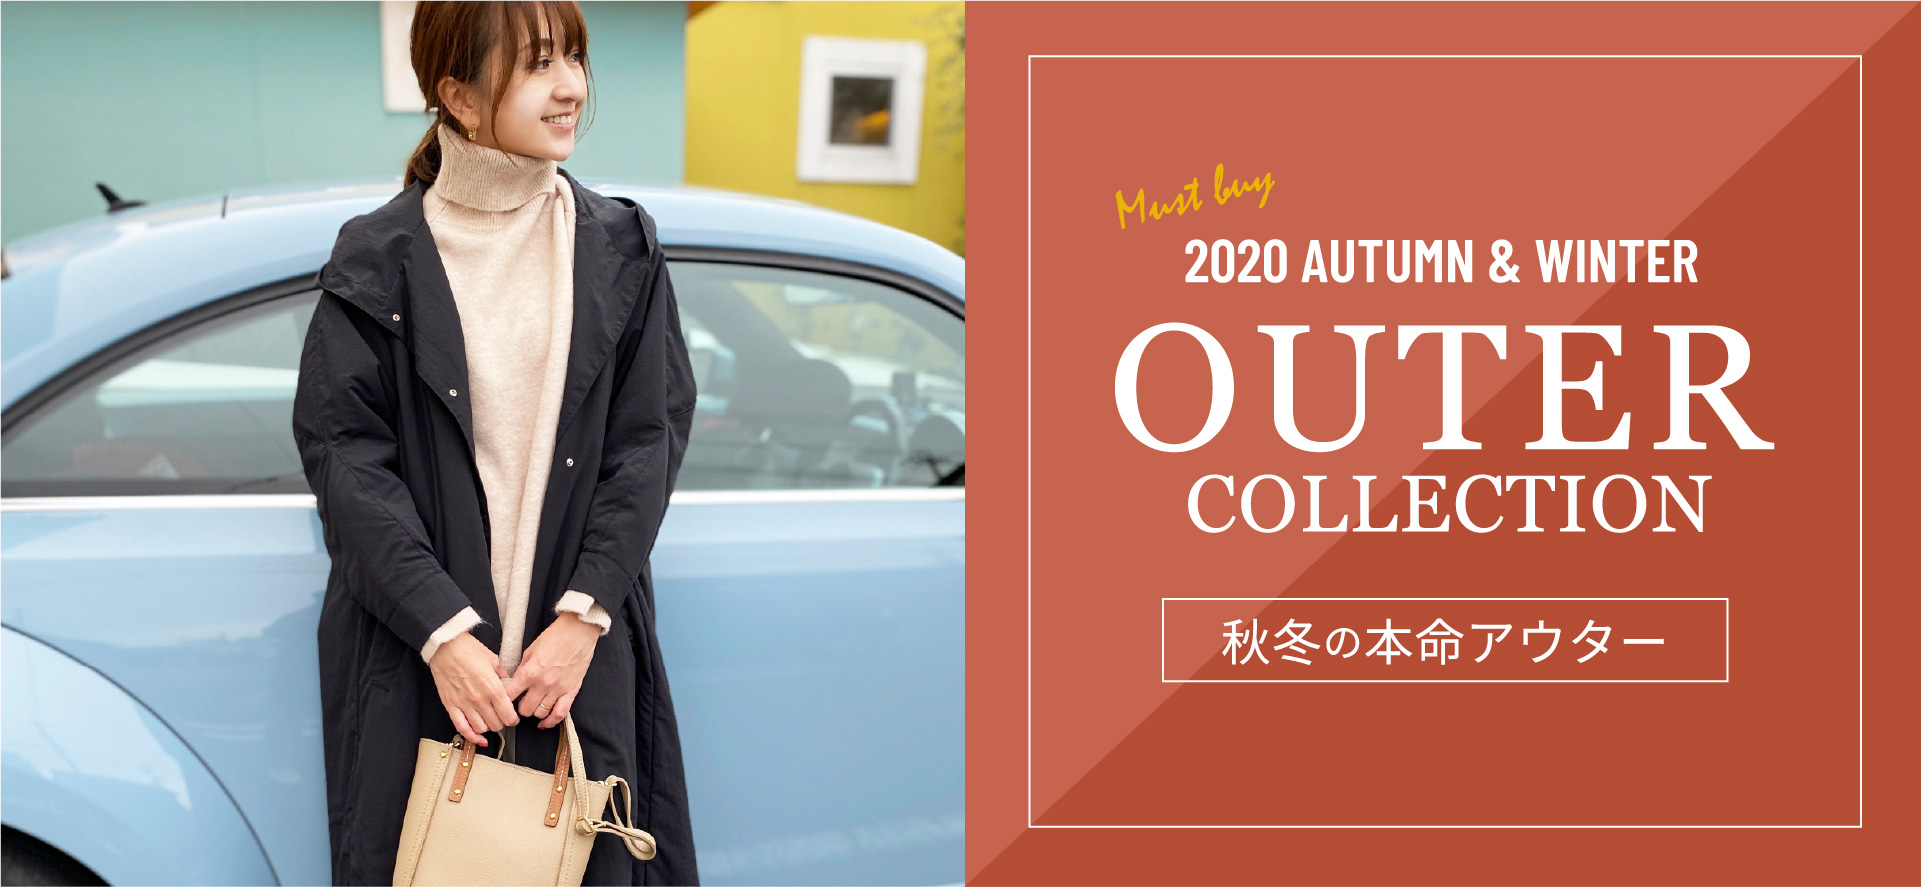 2020 AUTUMN & WINTER COLLECTION